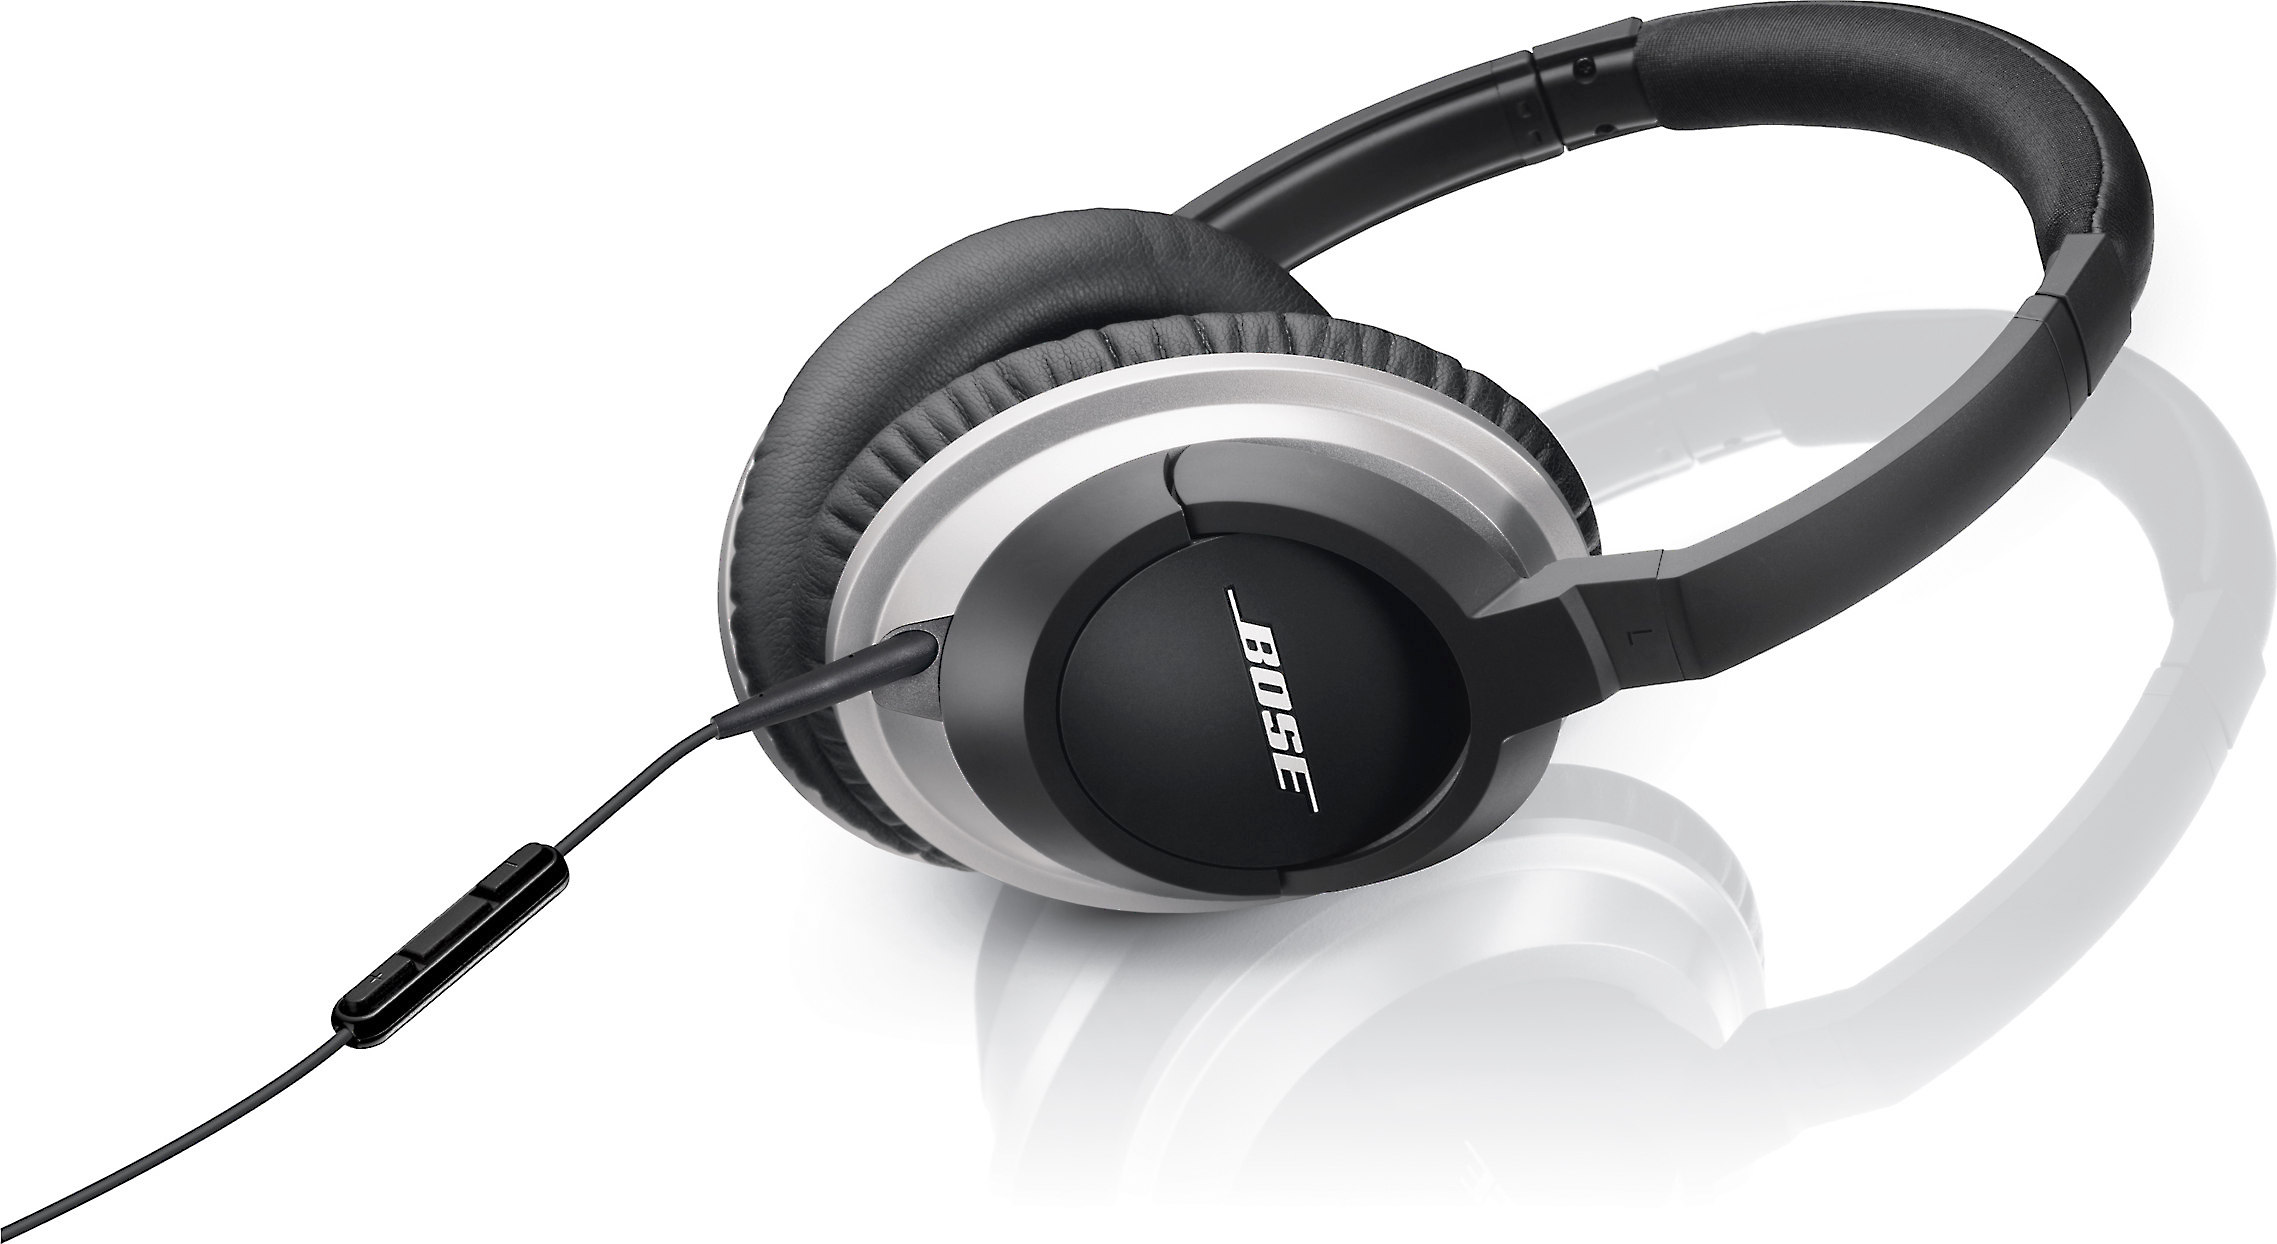 78488f8de9a Bose® AE2i audio headphones (Black) at Crutchfield